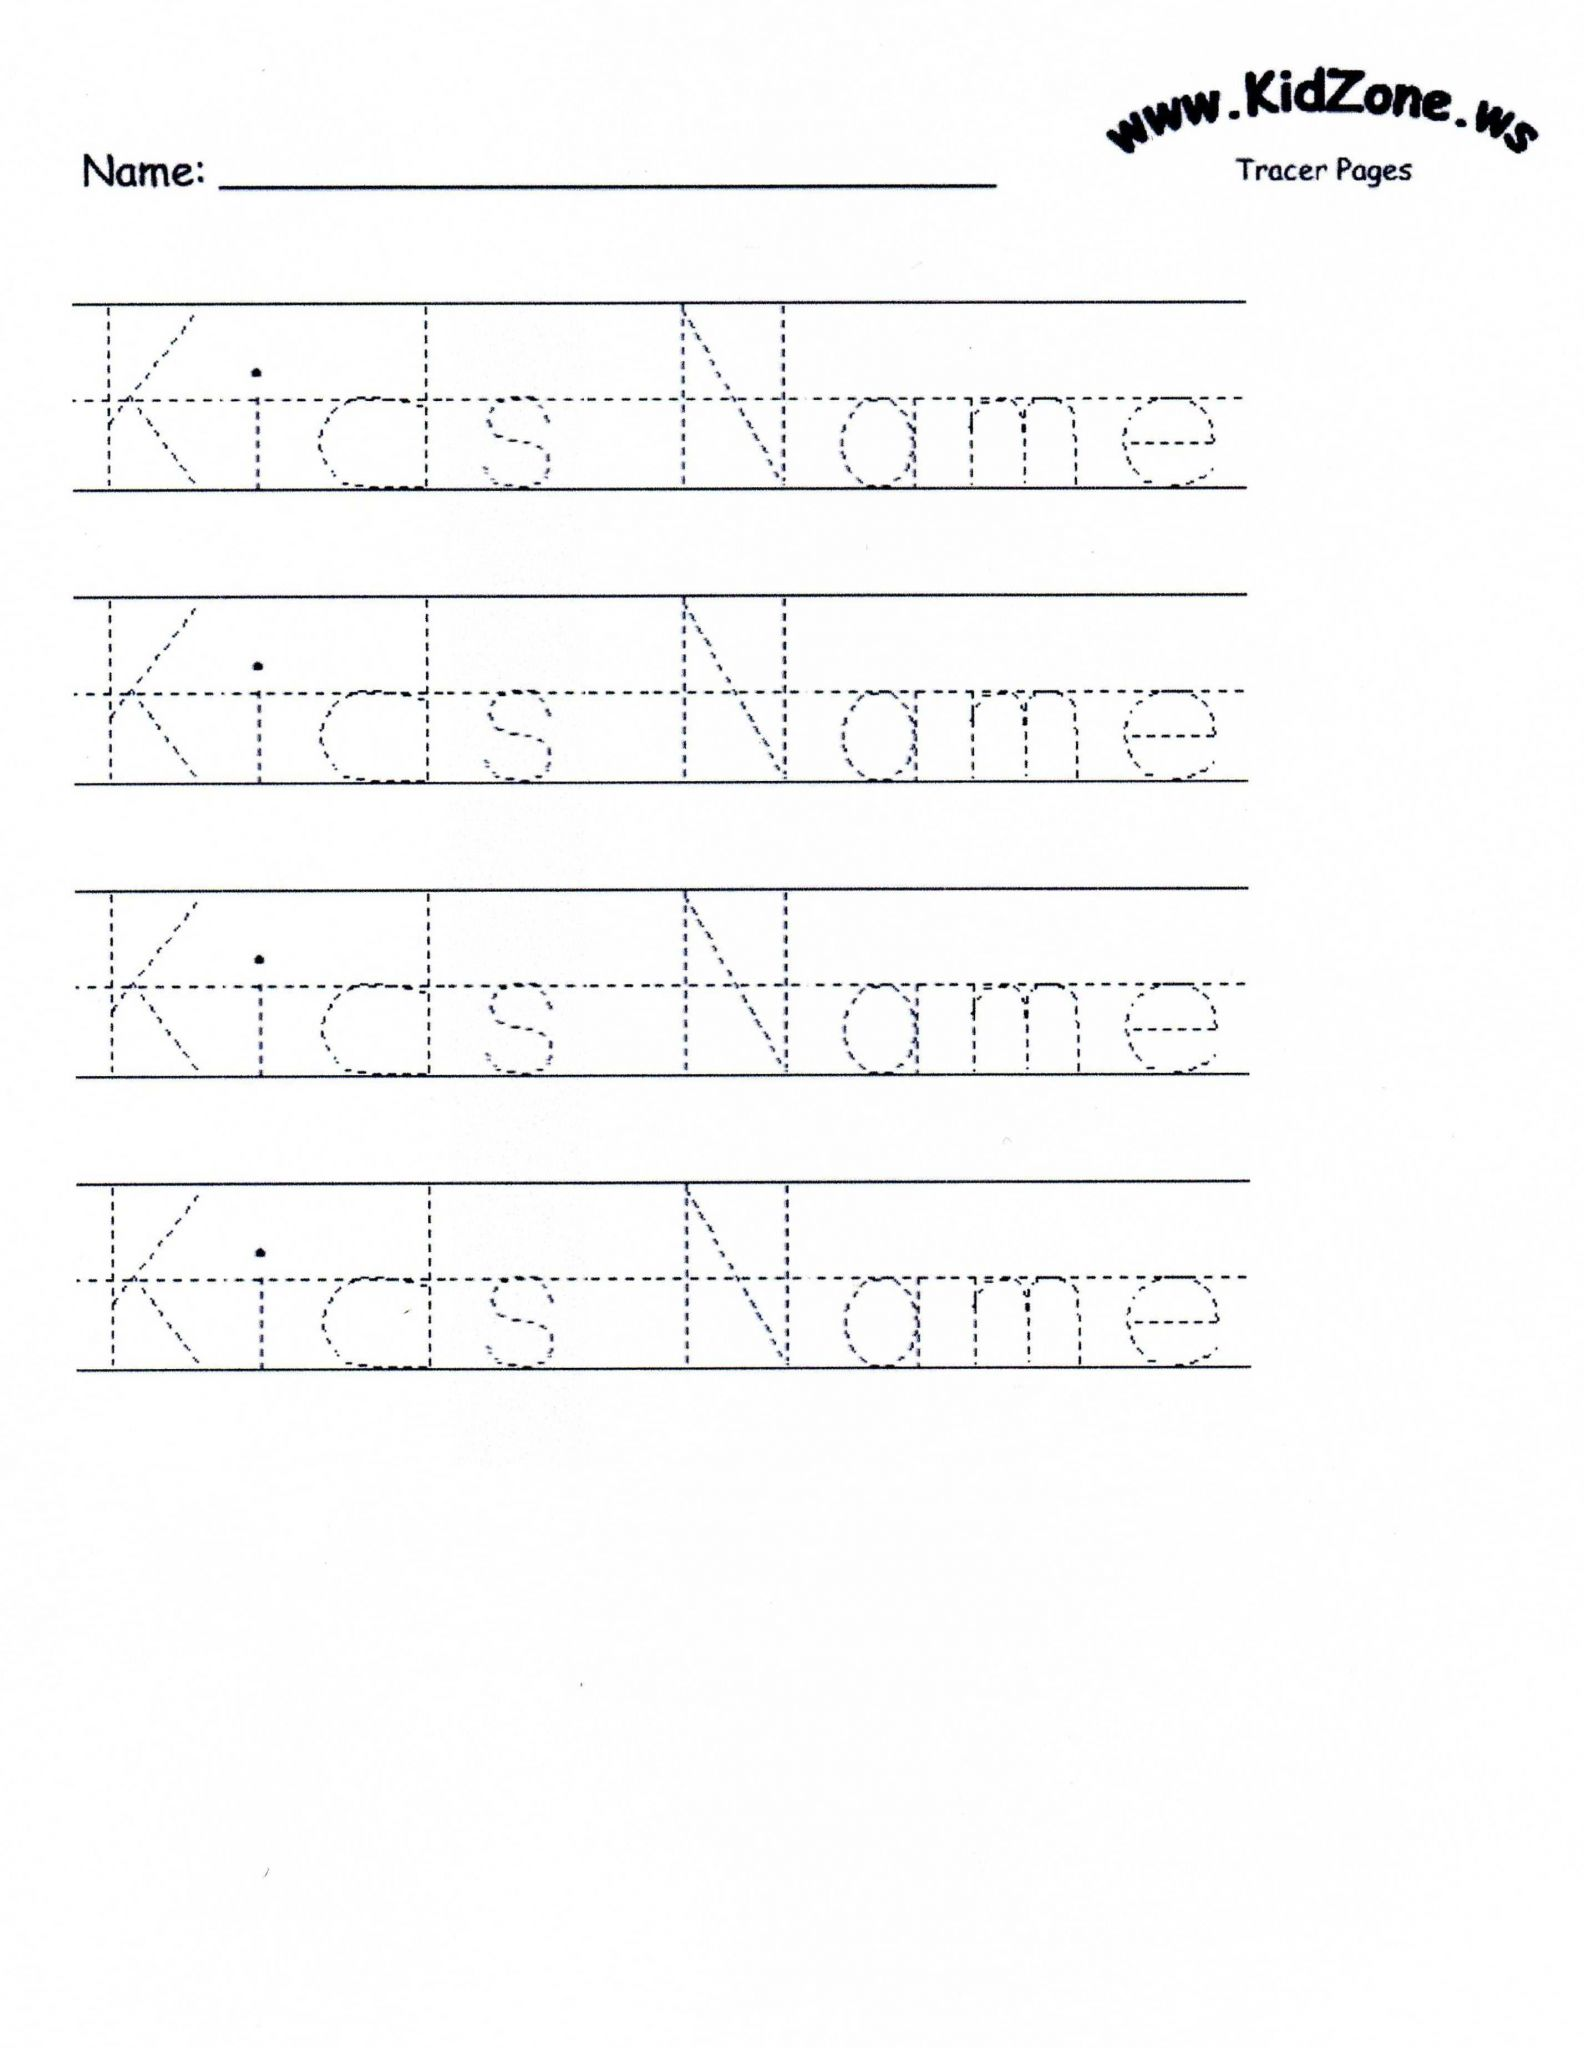 Custom Name Tracing Worksheets as Well as Customizable Printable Letter Pages